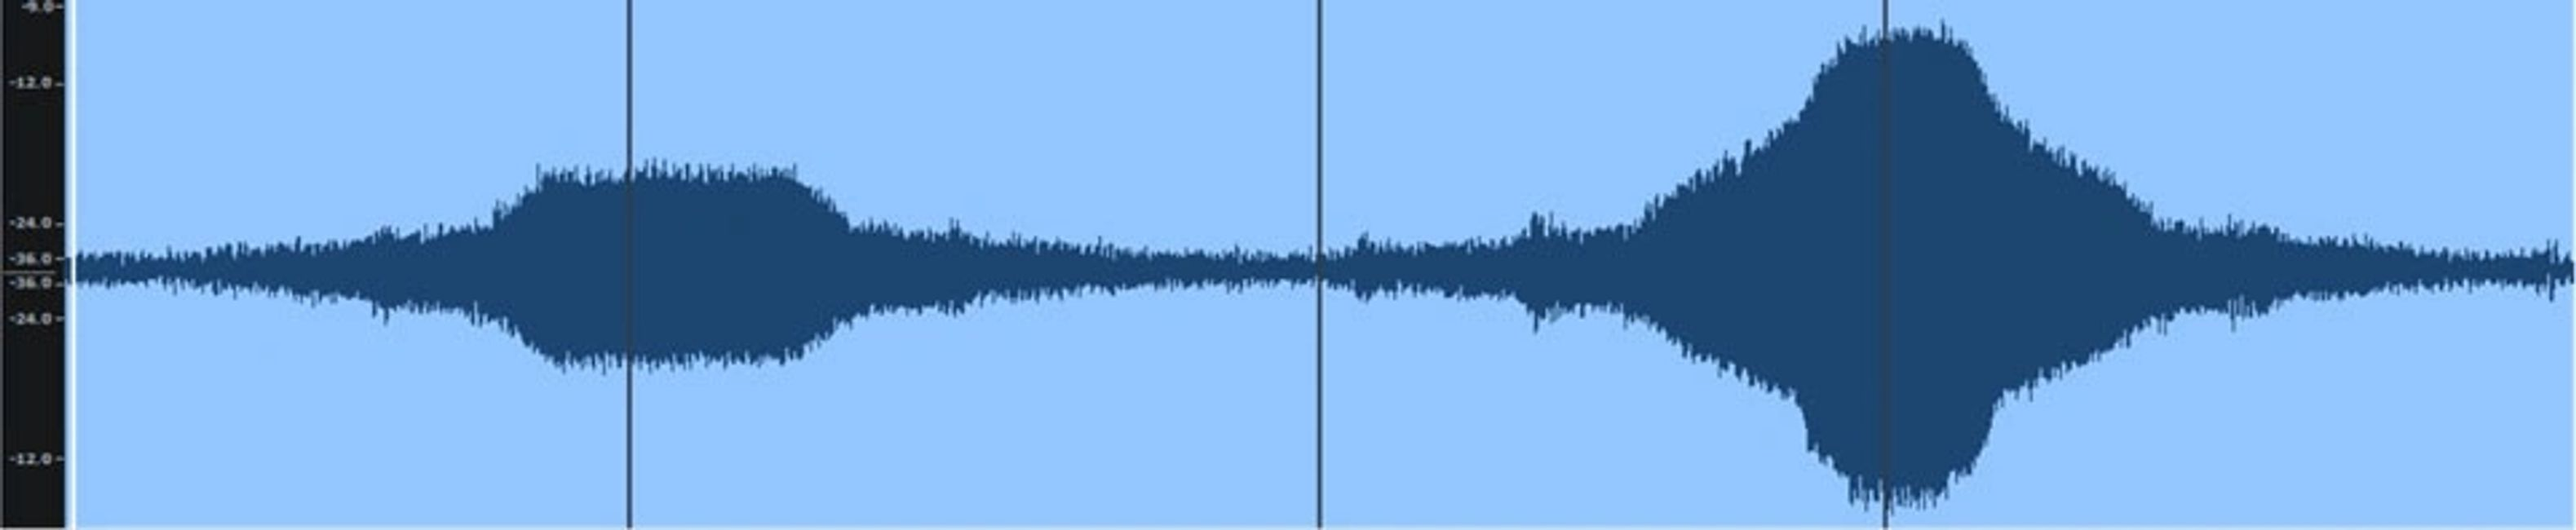 The difference in sound level between two slightly different driver designs.